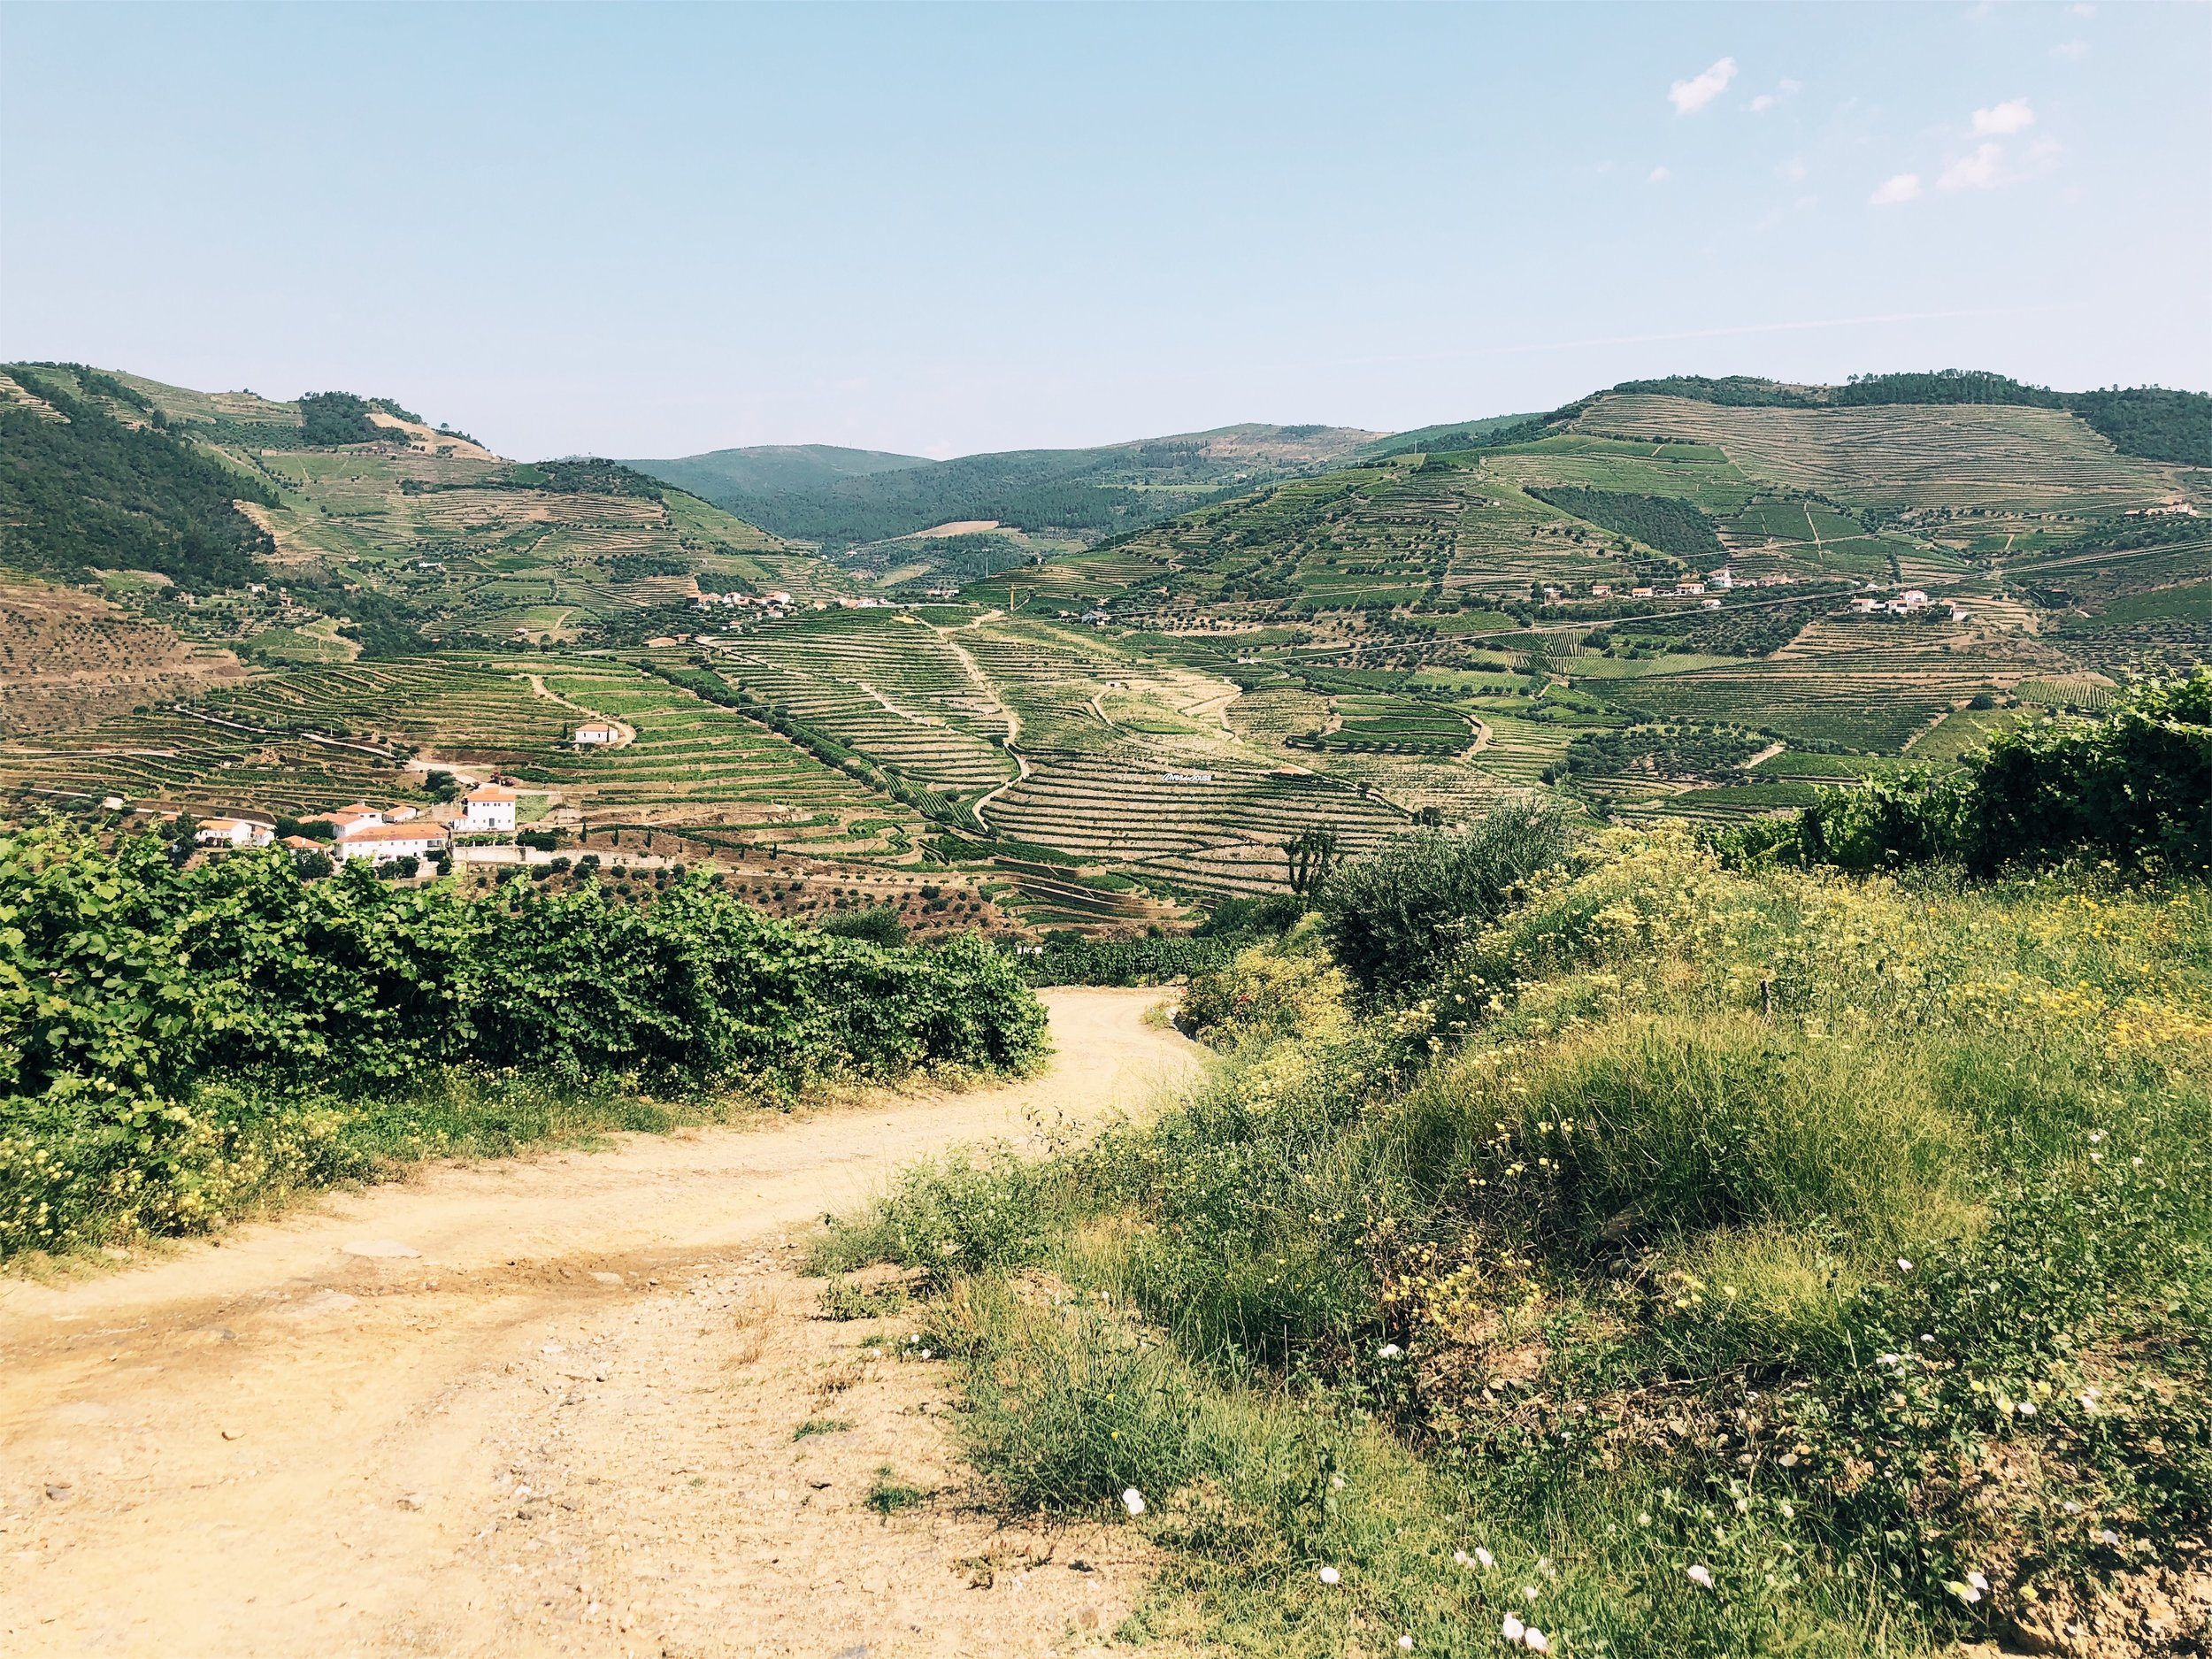 Quinta do Pego morning hike in the Douro Valley vineyards